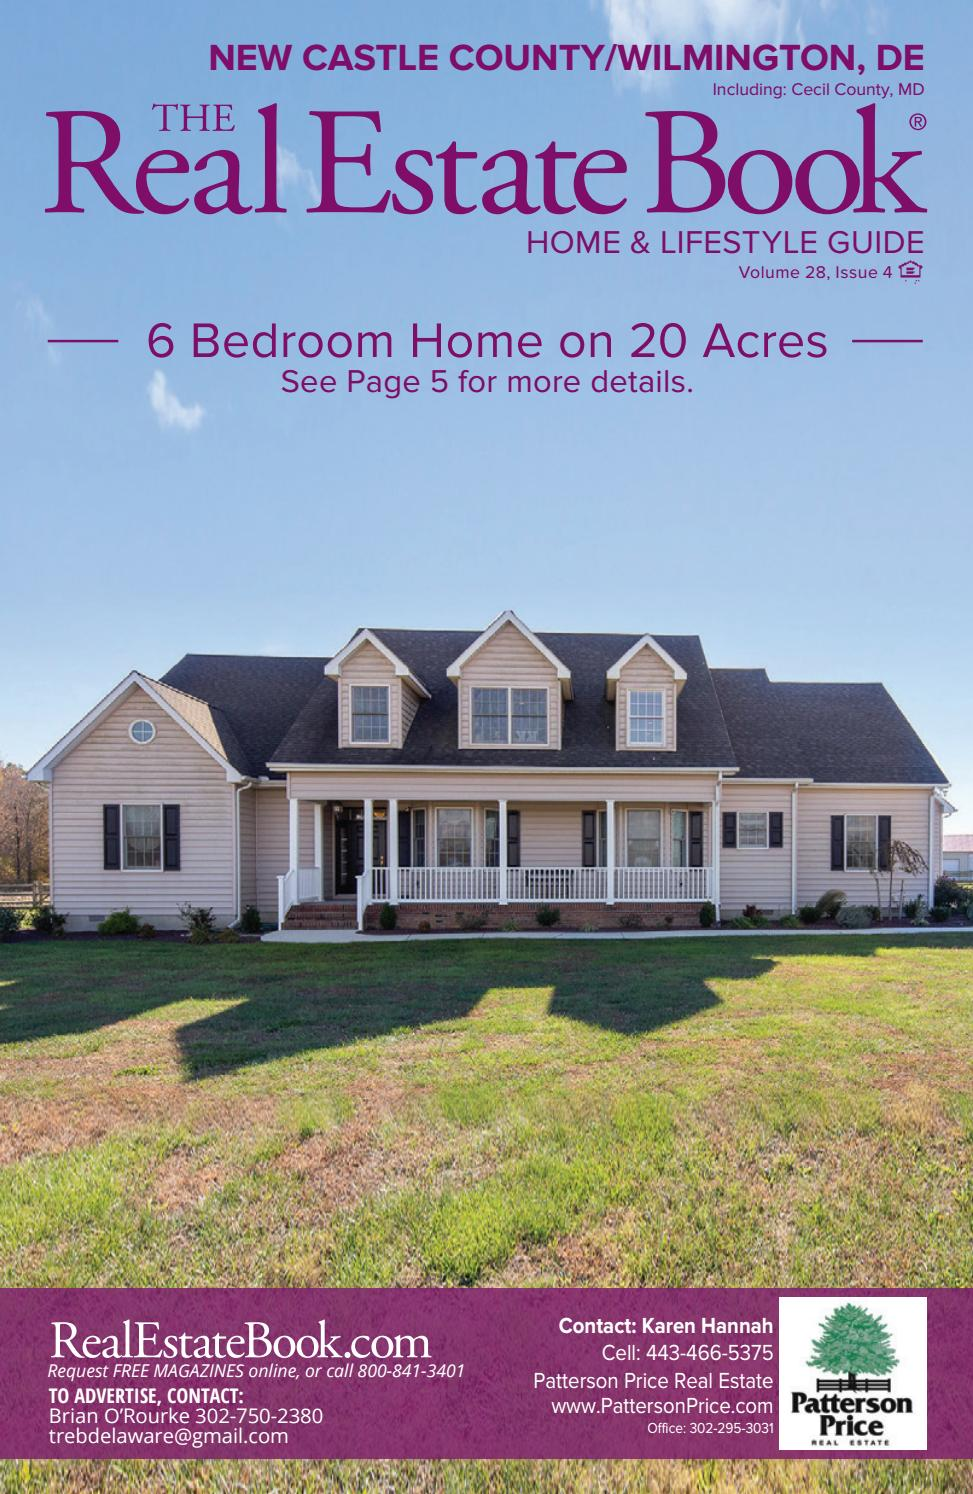 The Real Estate Book New Castle County